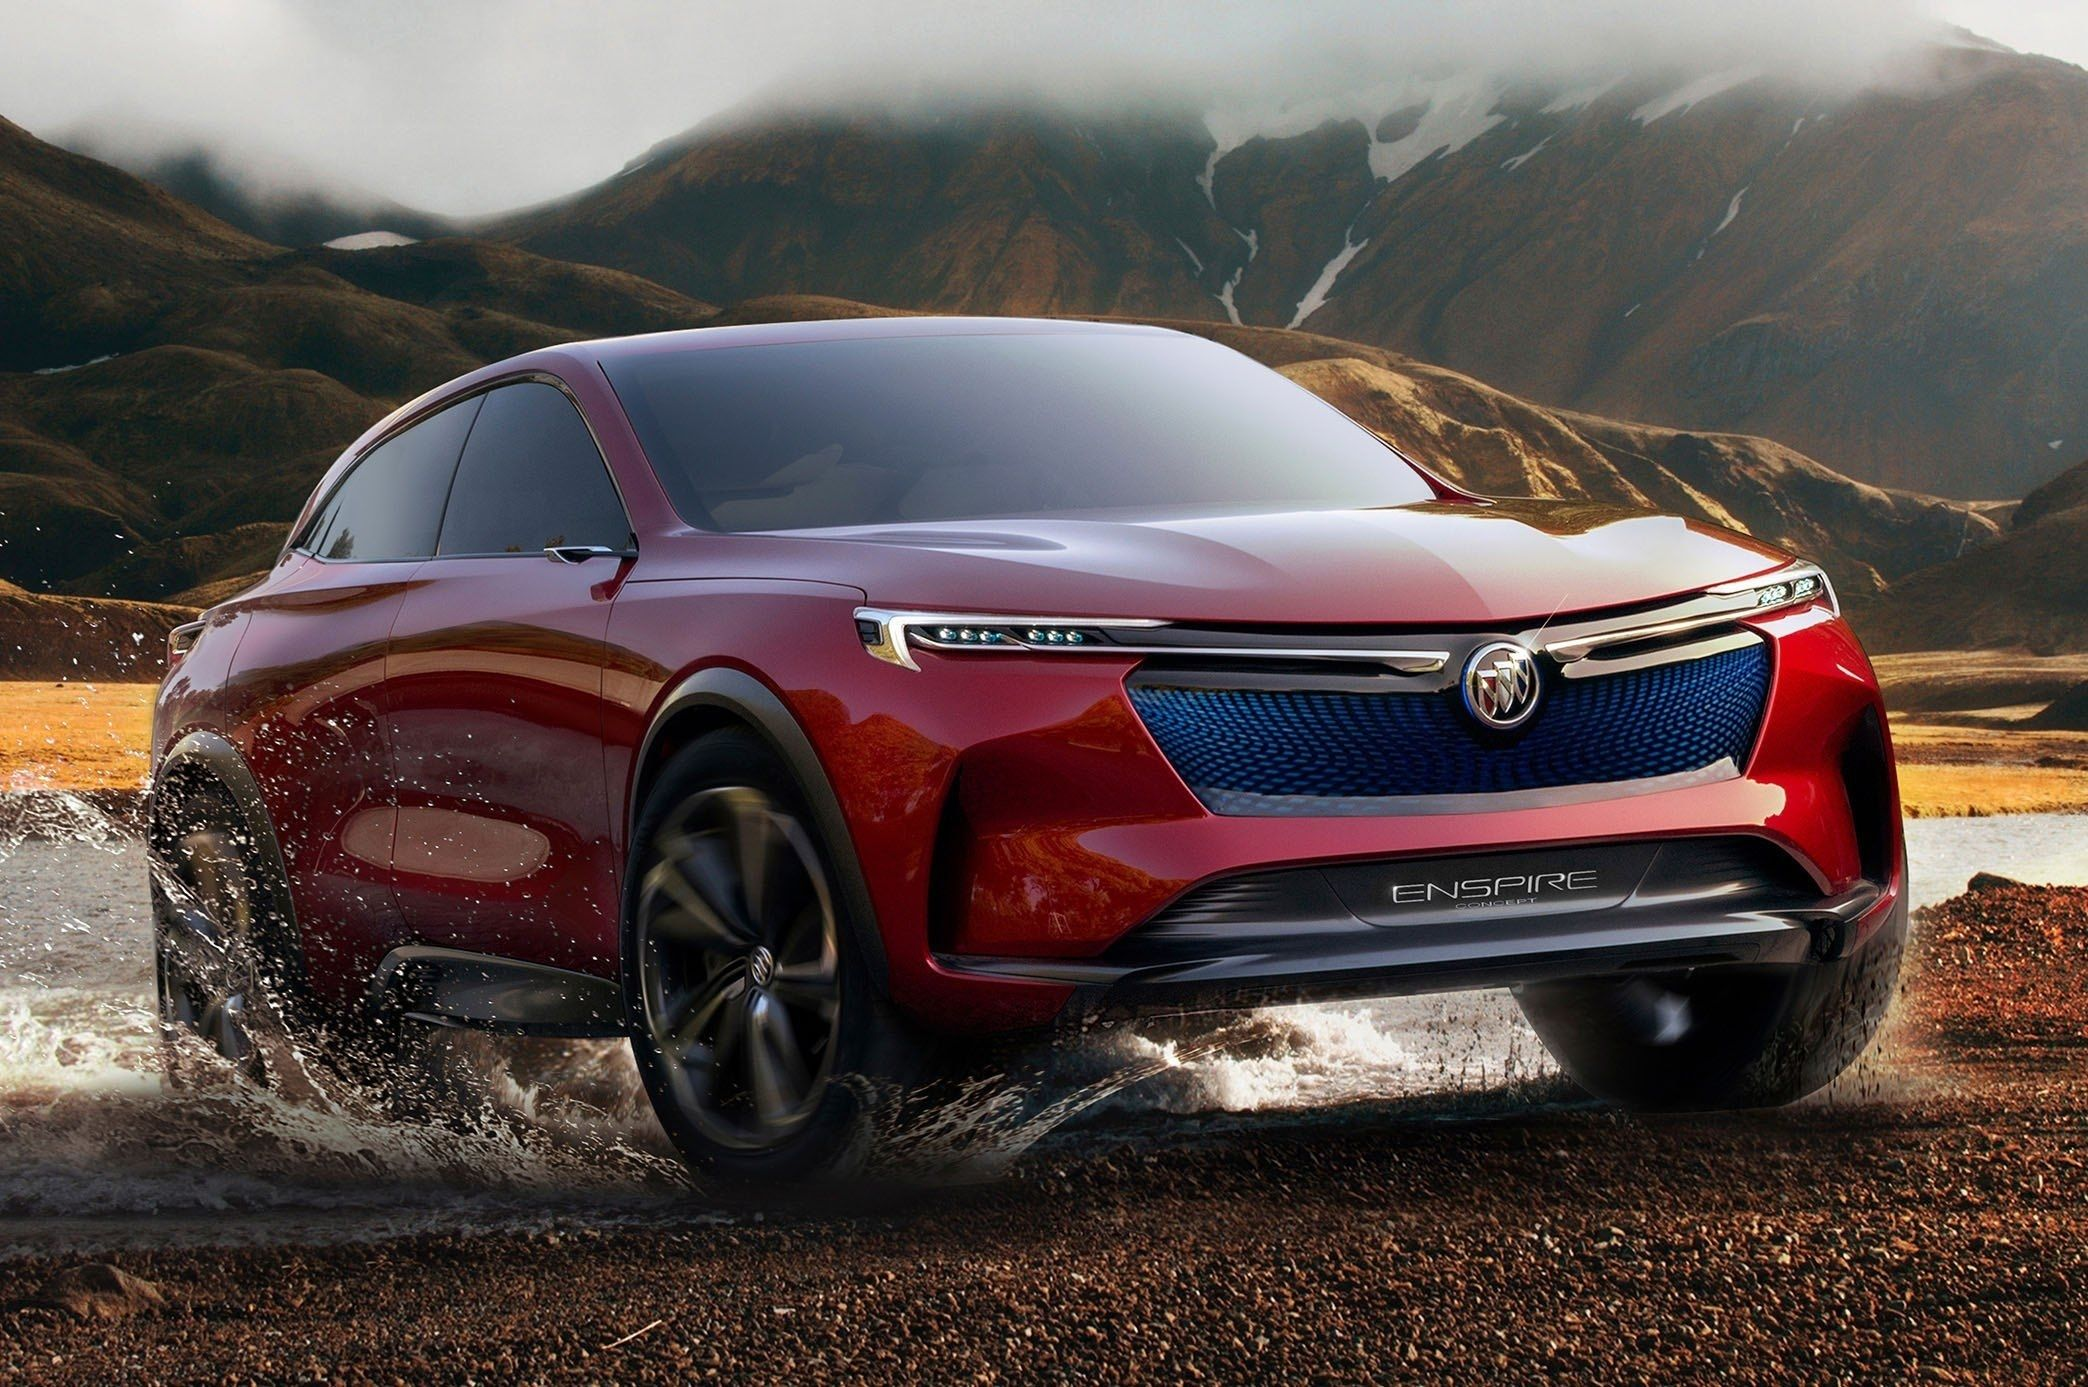 2020 Buick Park Avenue Release Date and Concept